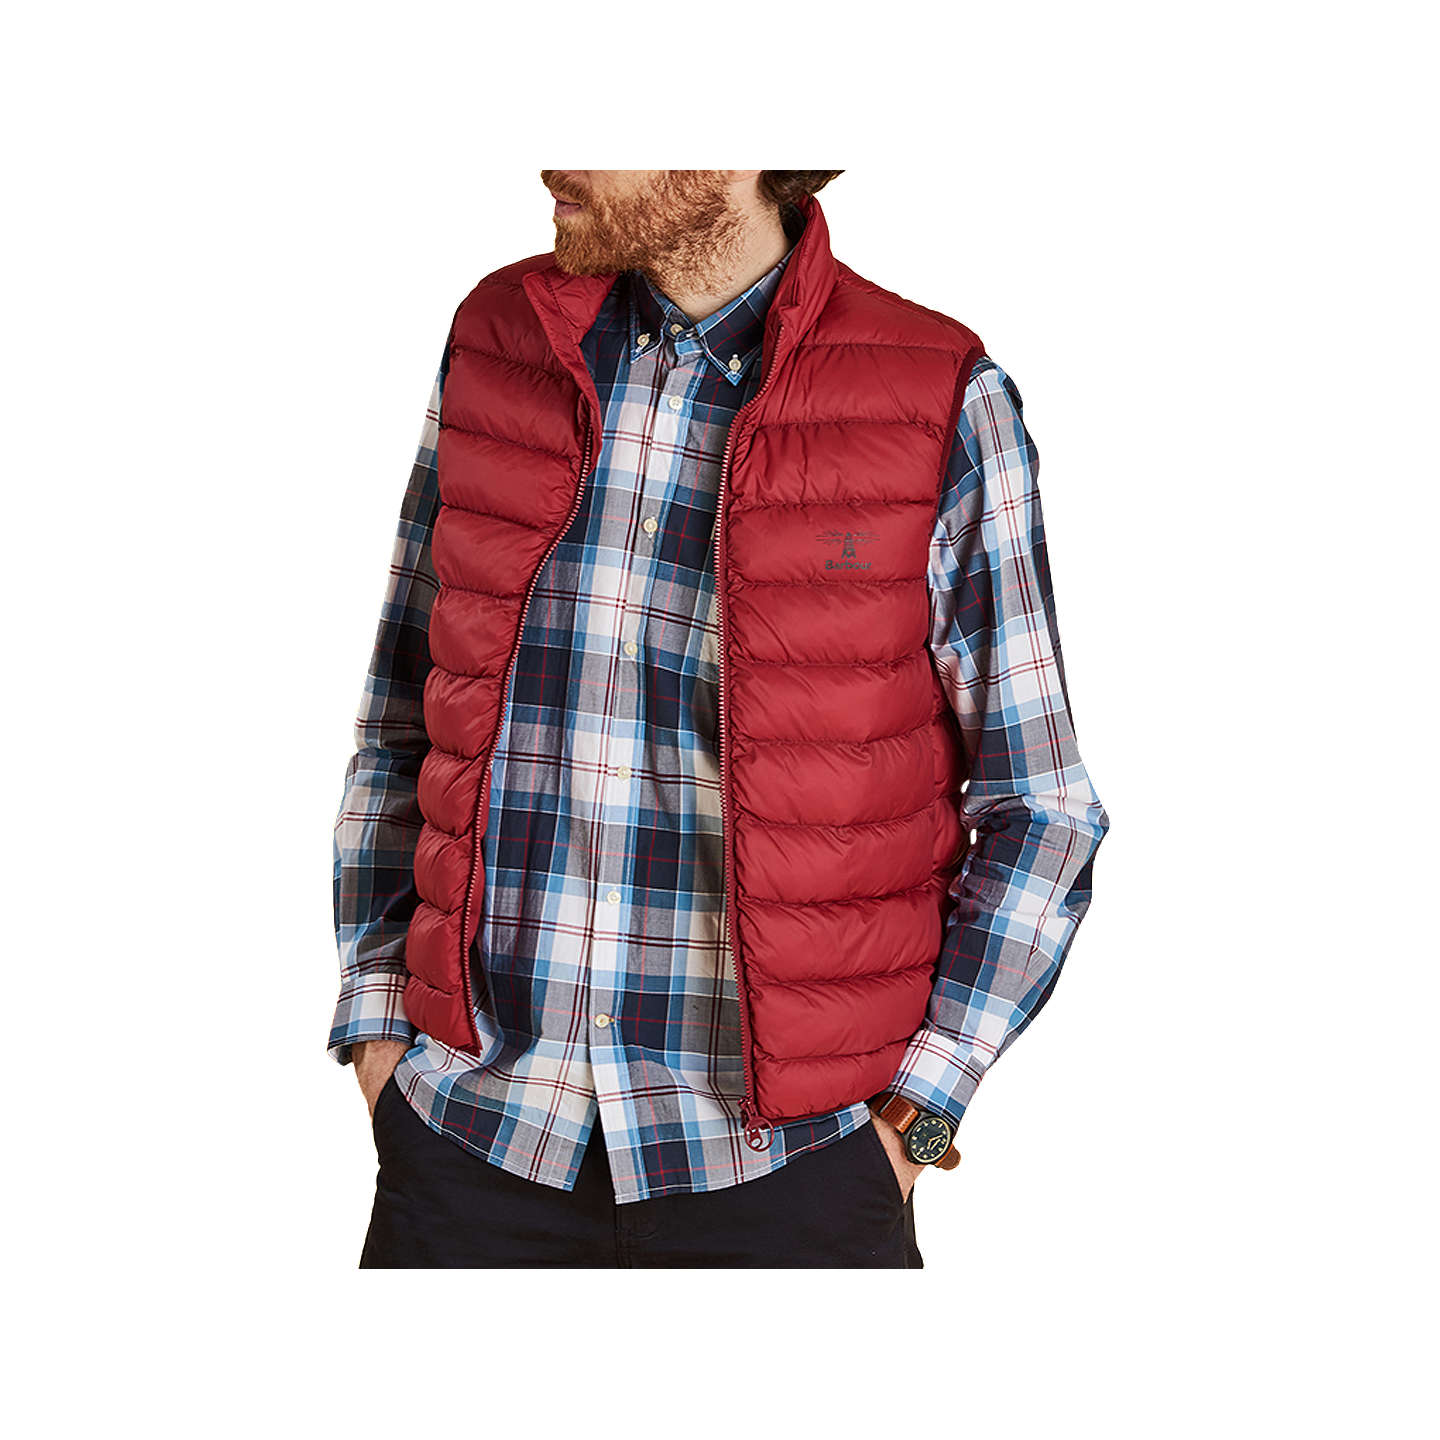 BuyBarbour Askham Padded Gilet, Red, S Online at johnlewis.com